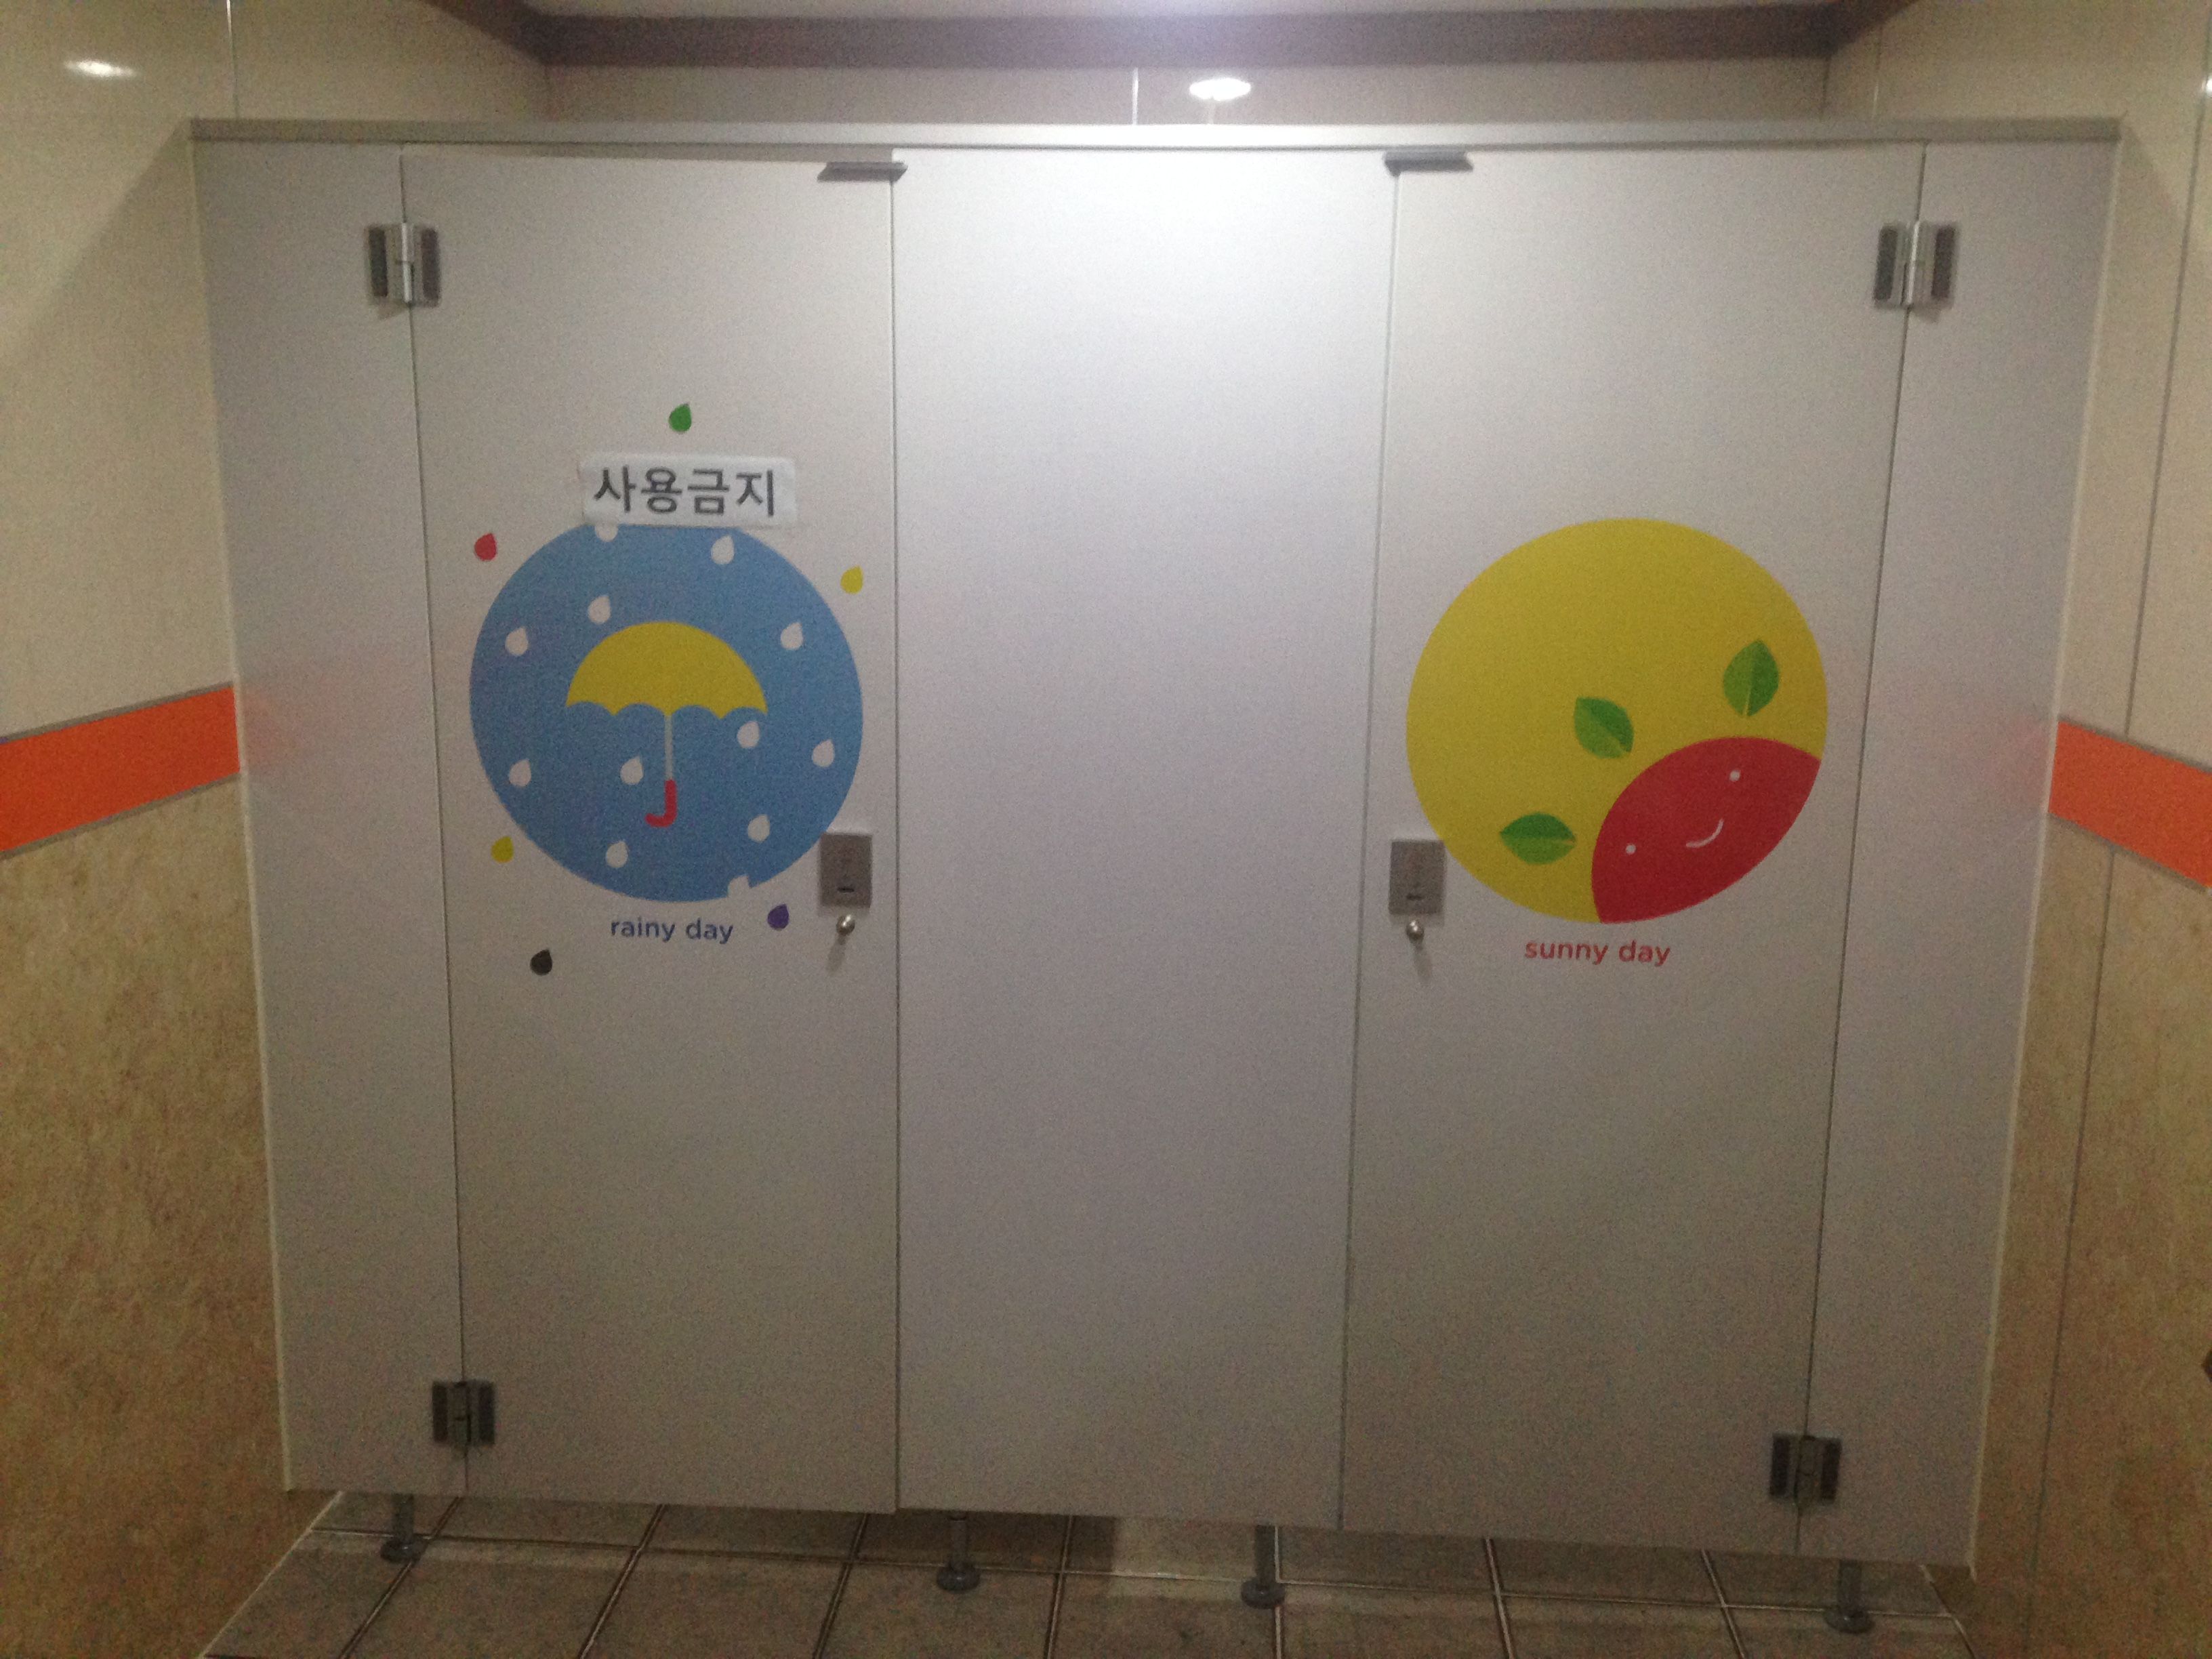 Unisex Bathroom Stall 4 surprising facts about using the restroom in south korea | live